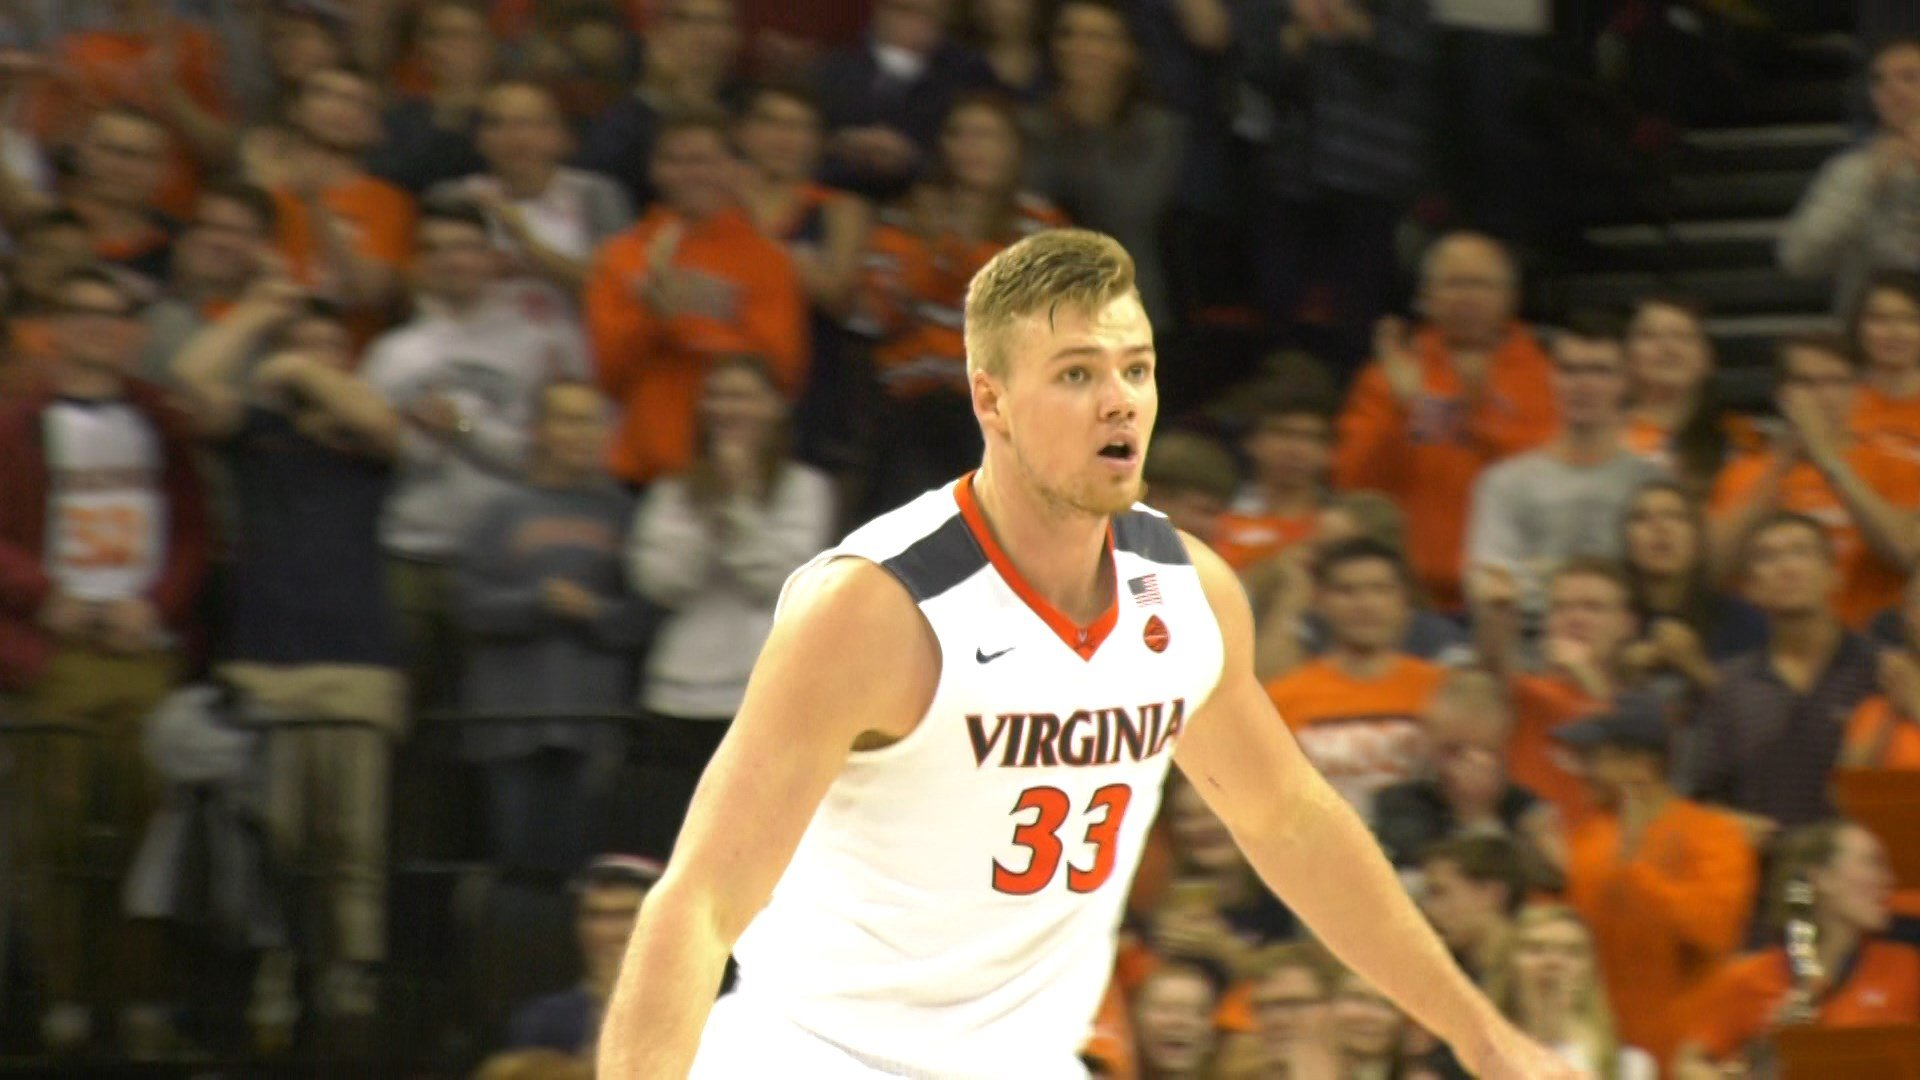 Virginia junior center Jack Salt